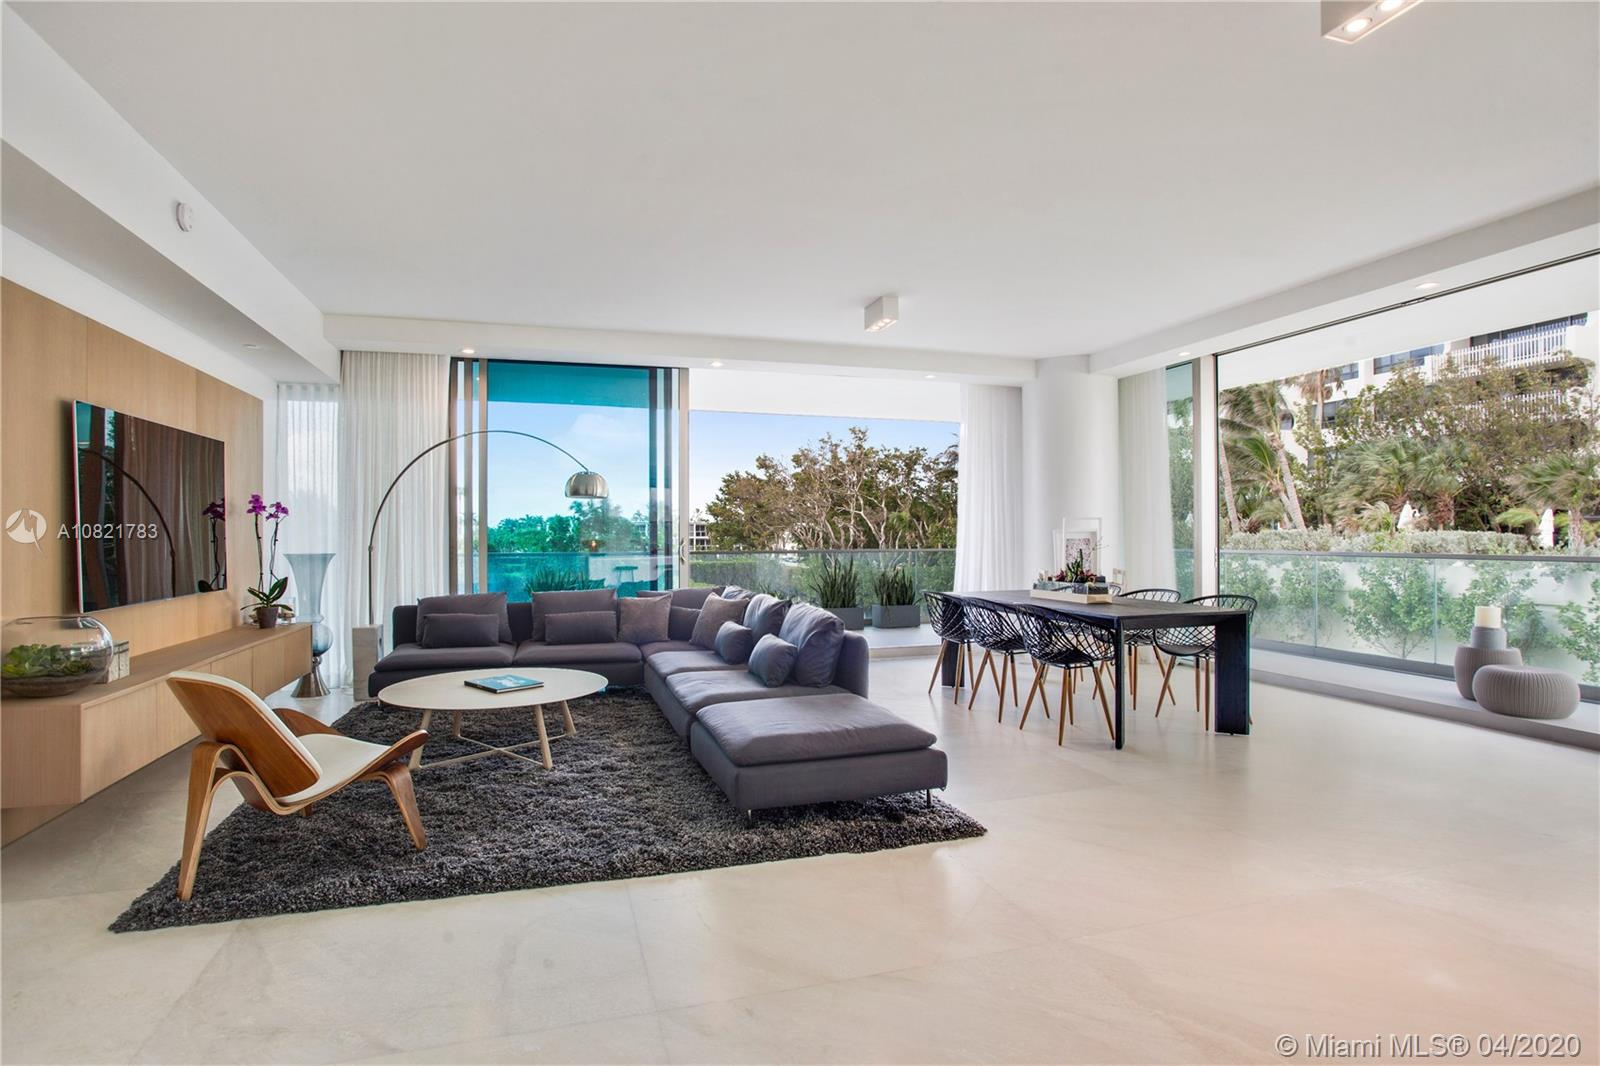 10203 Collins Ave, 211 - Bal Harbour, Florida